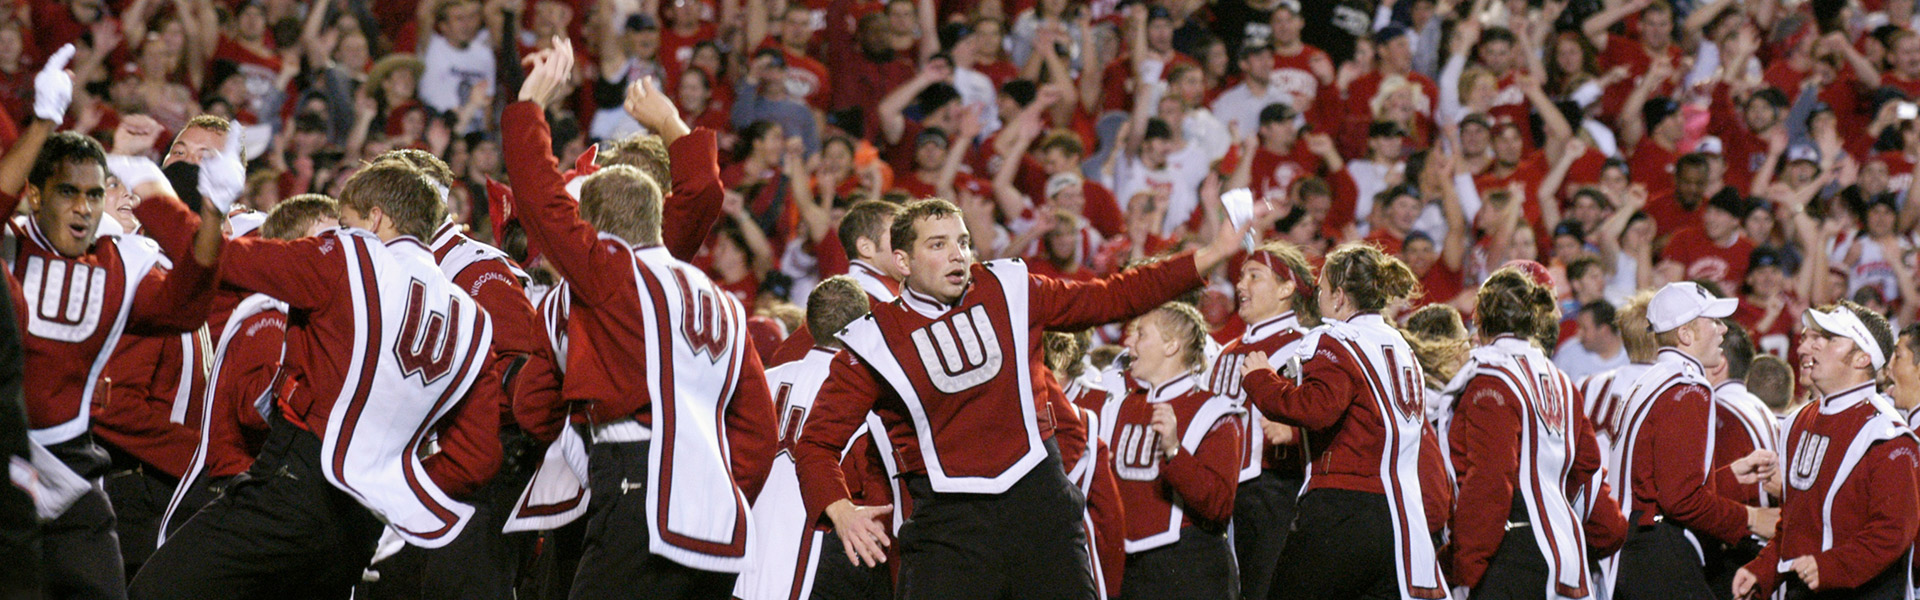 Jump Around Wisconsin Badgers